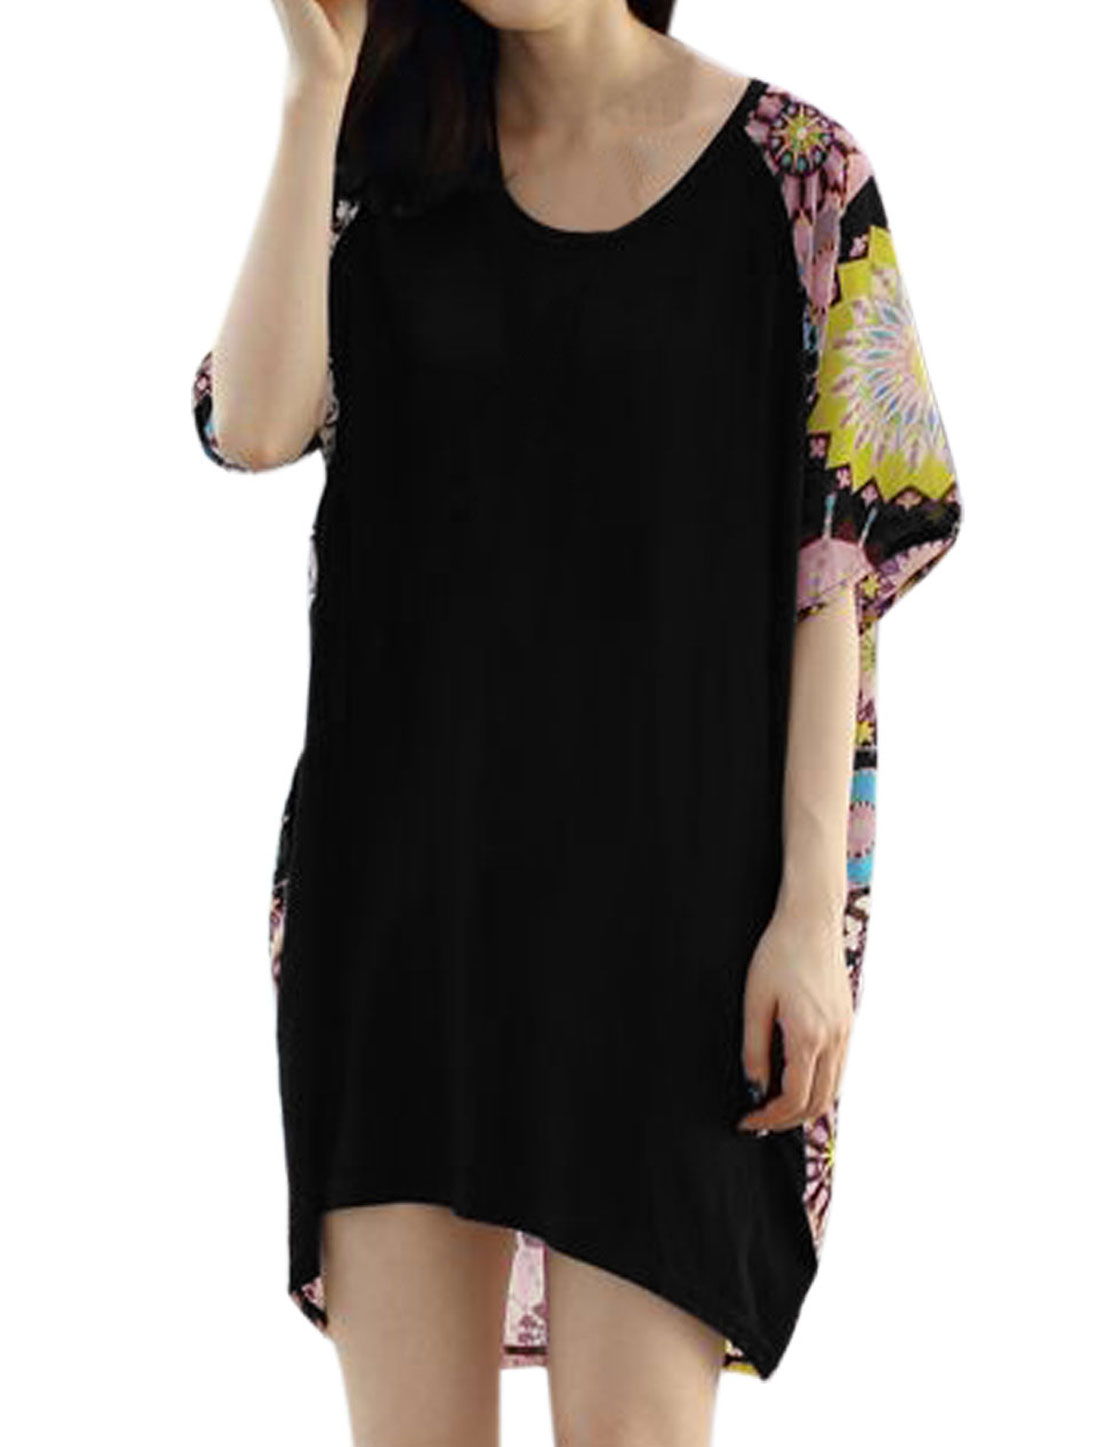 Lady Geometric Prints Panel Design High Low Hem Loose Tunic Top Black M